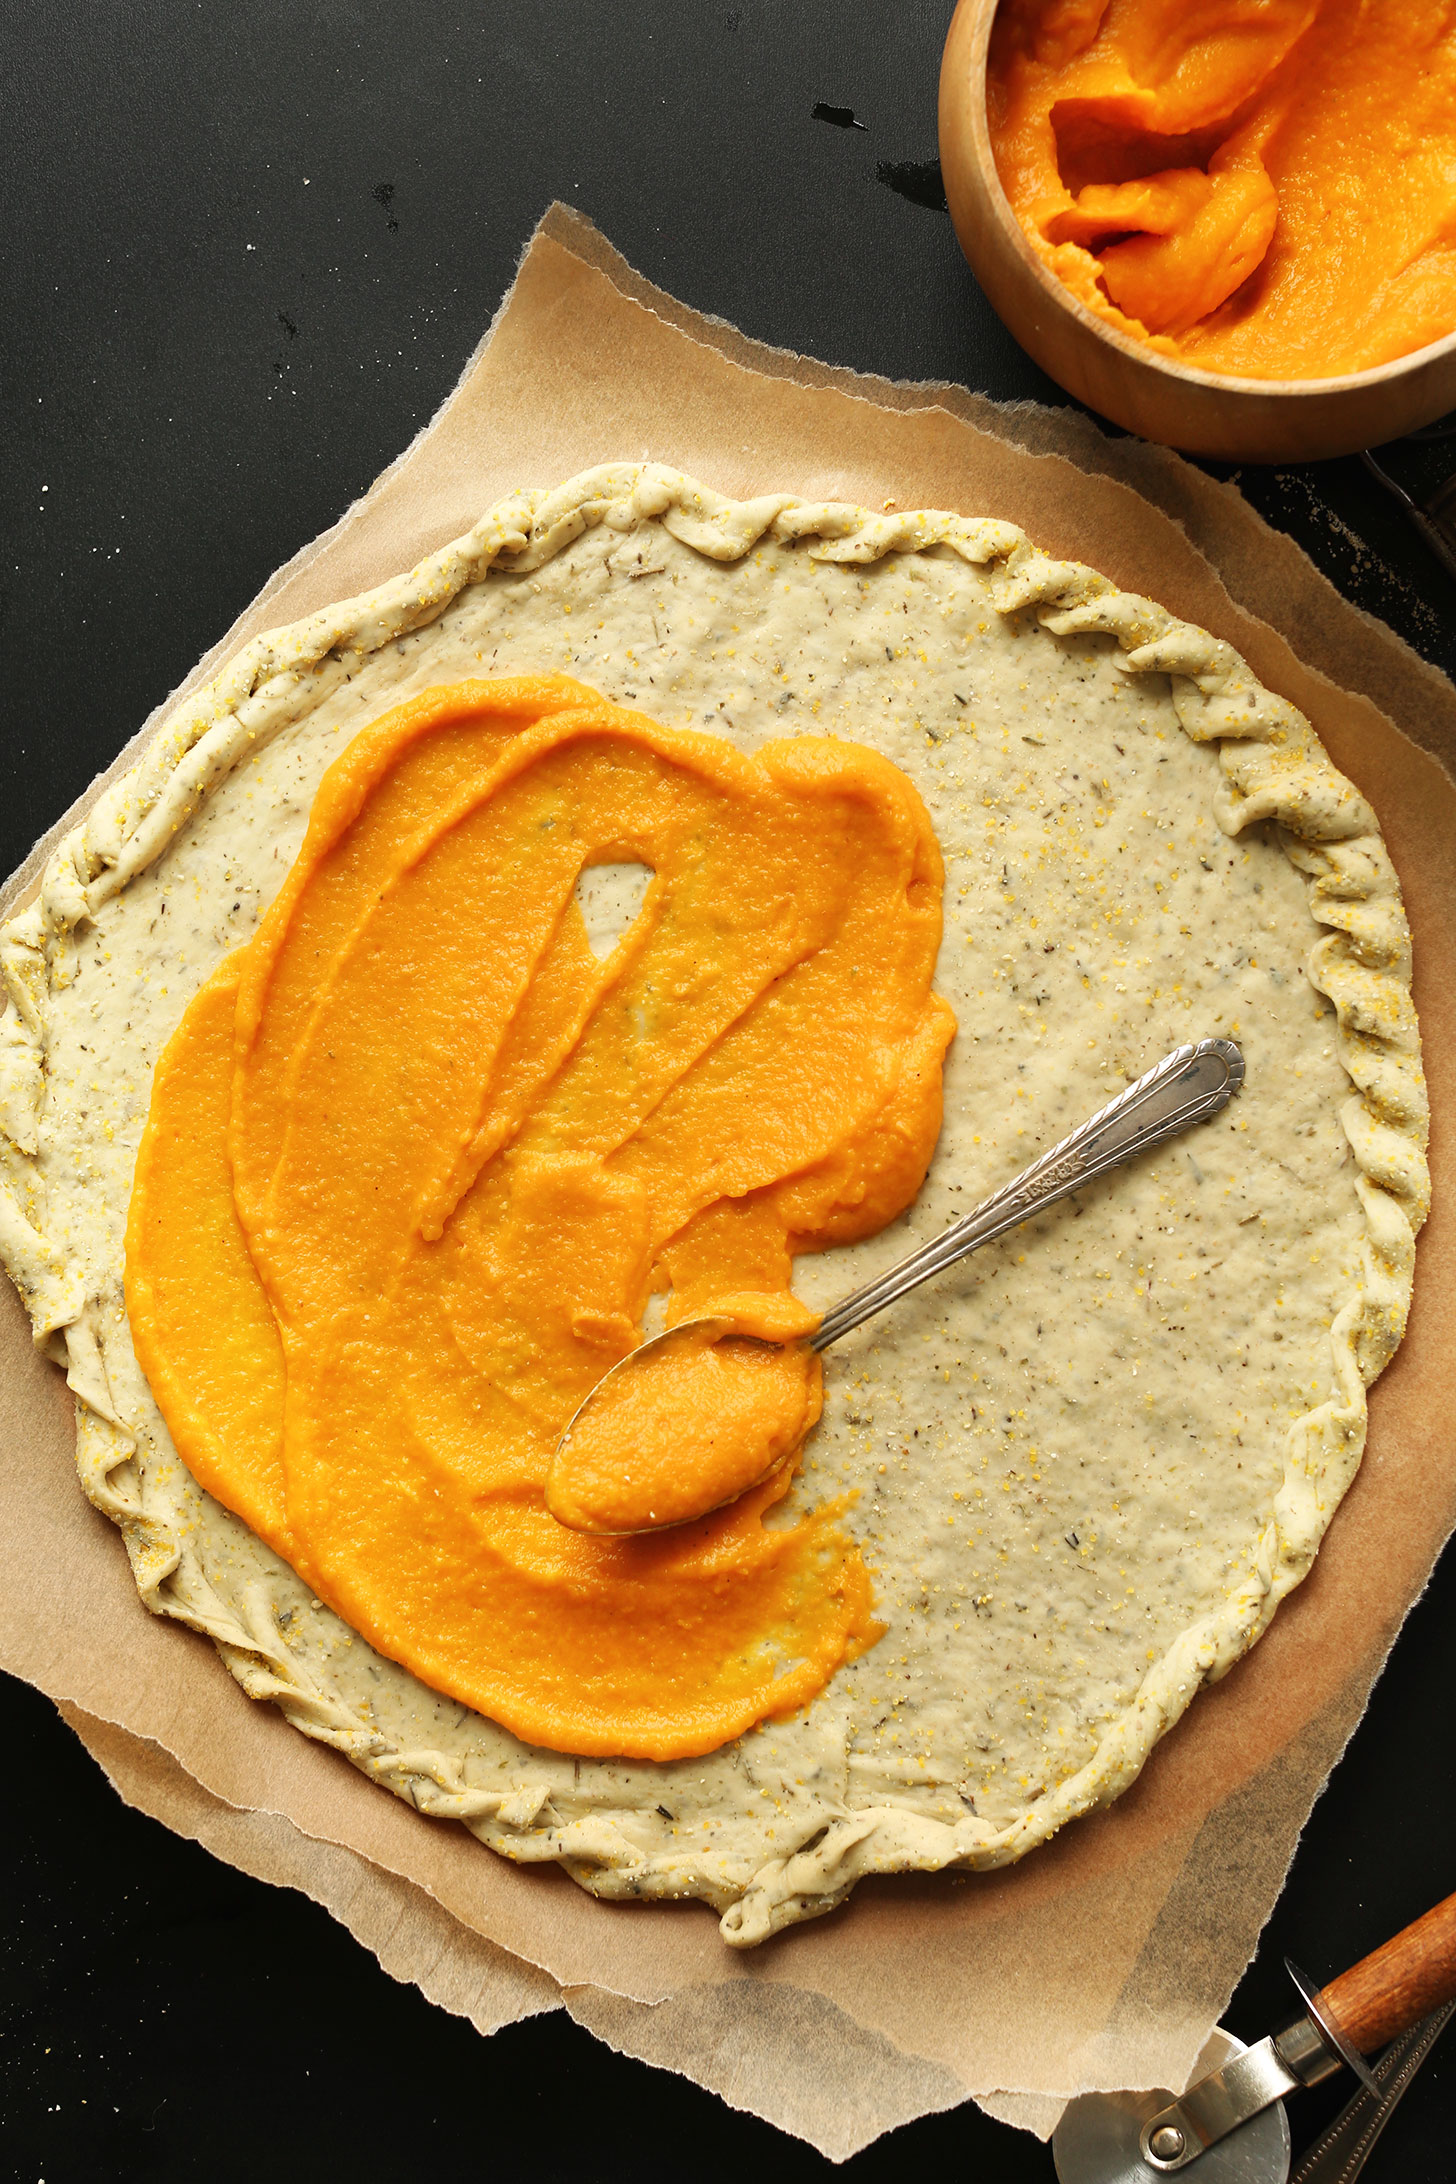 Spreading butternut squash pizza sauce onto crust for homemade vegan pizza night